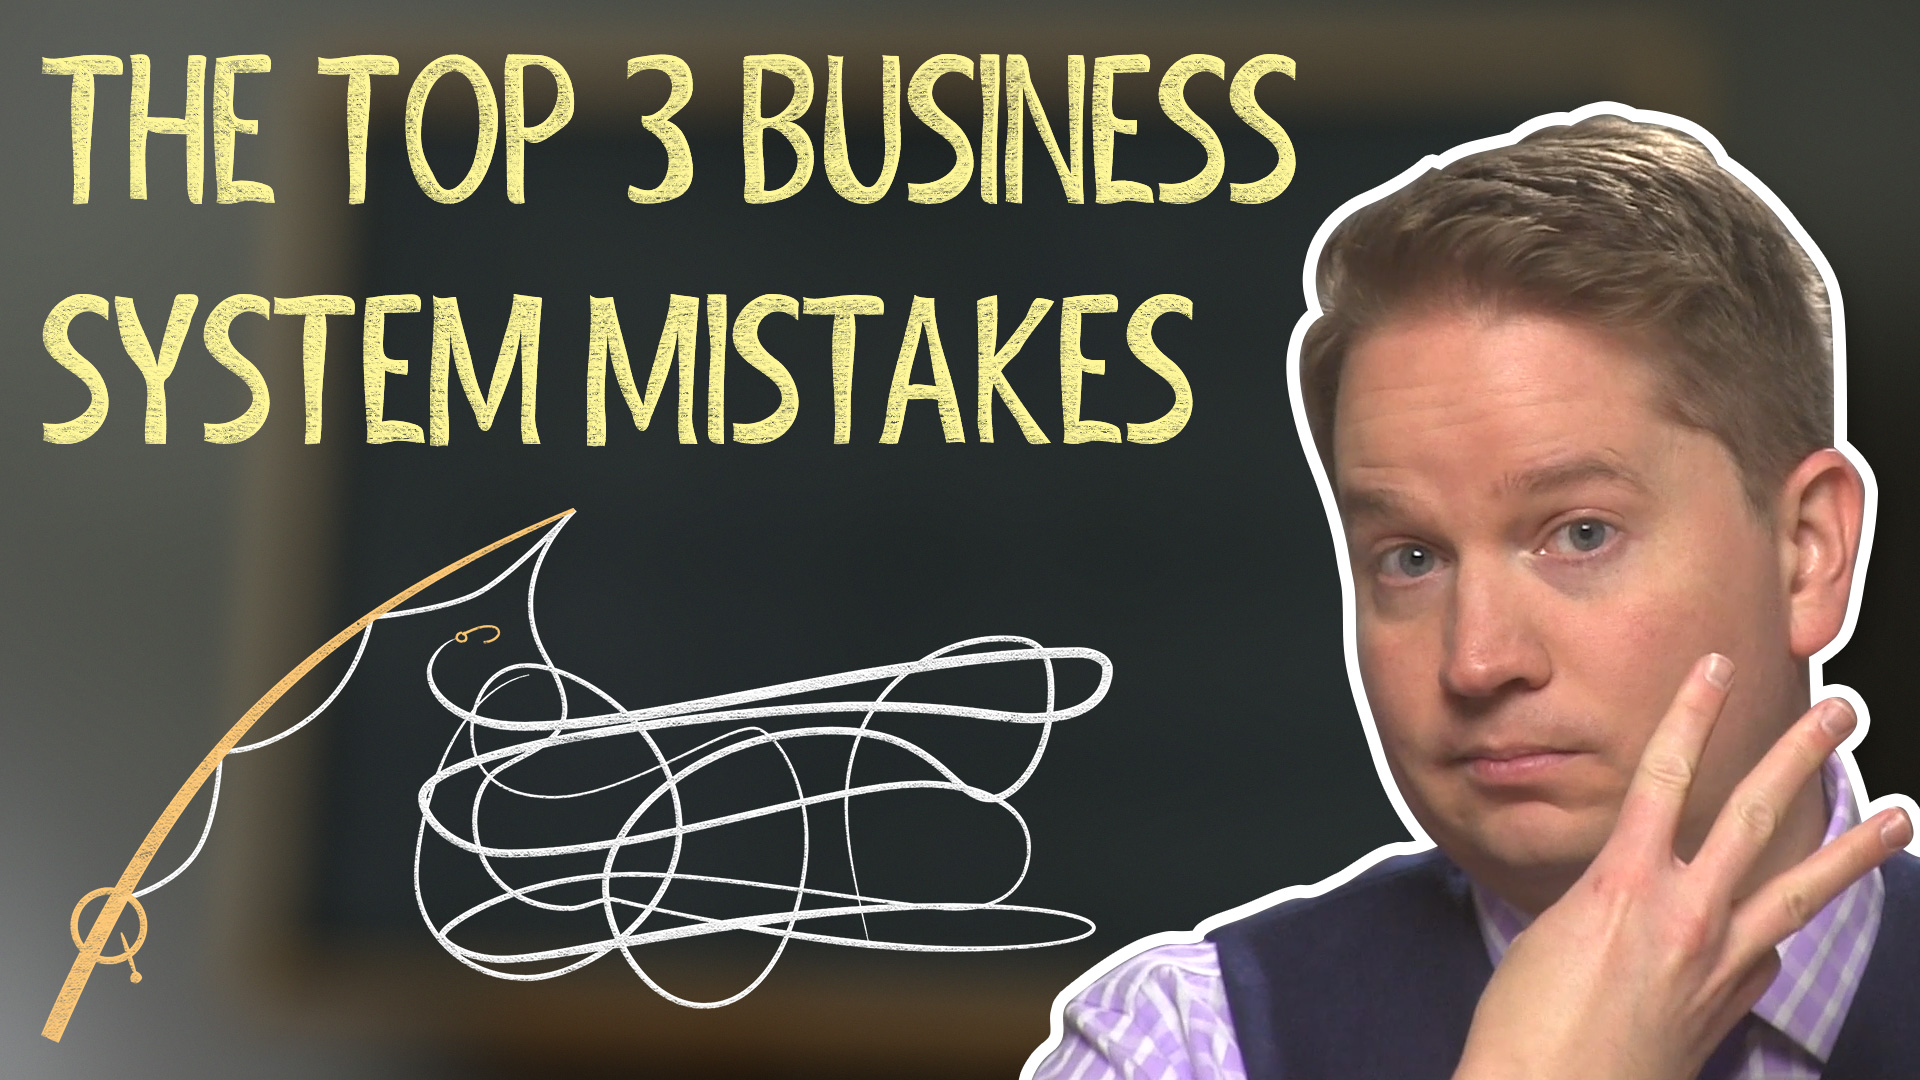 Stay Away from These 3 Business System Mistakes